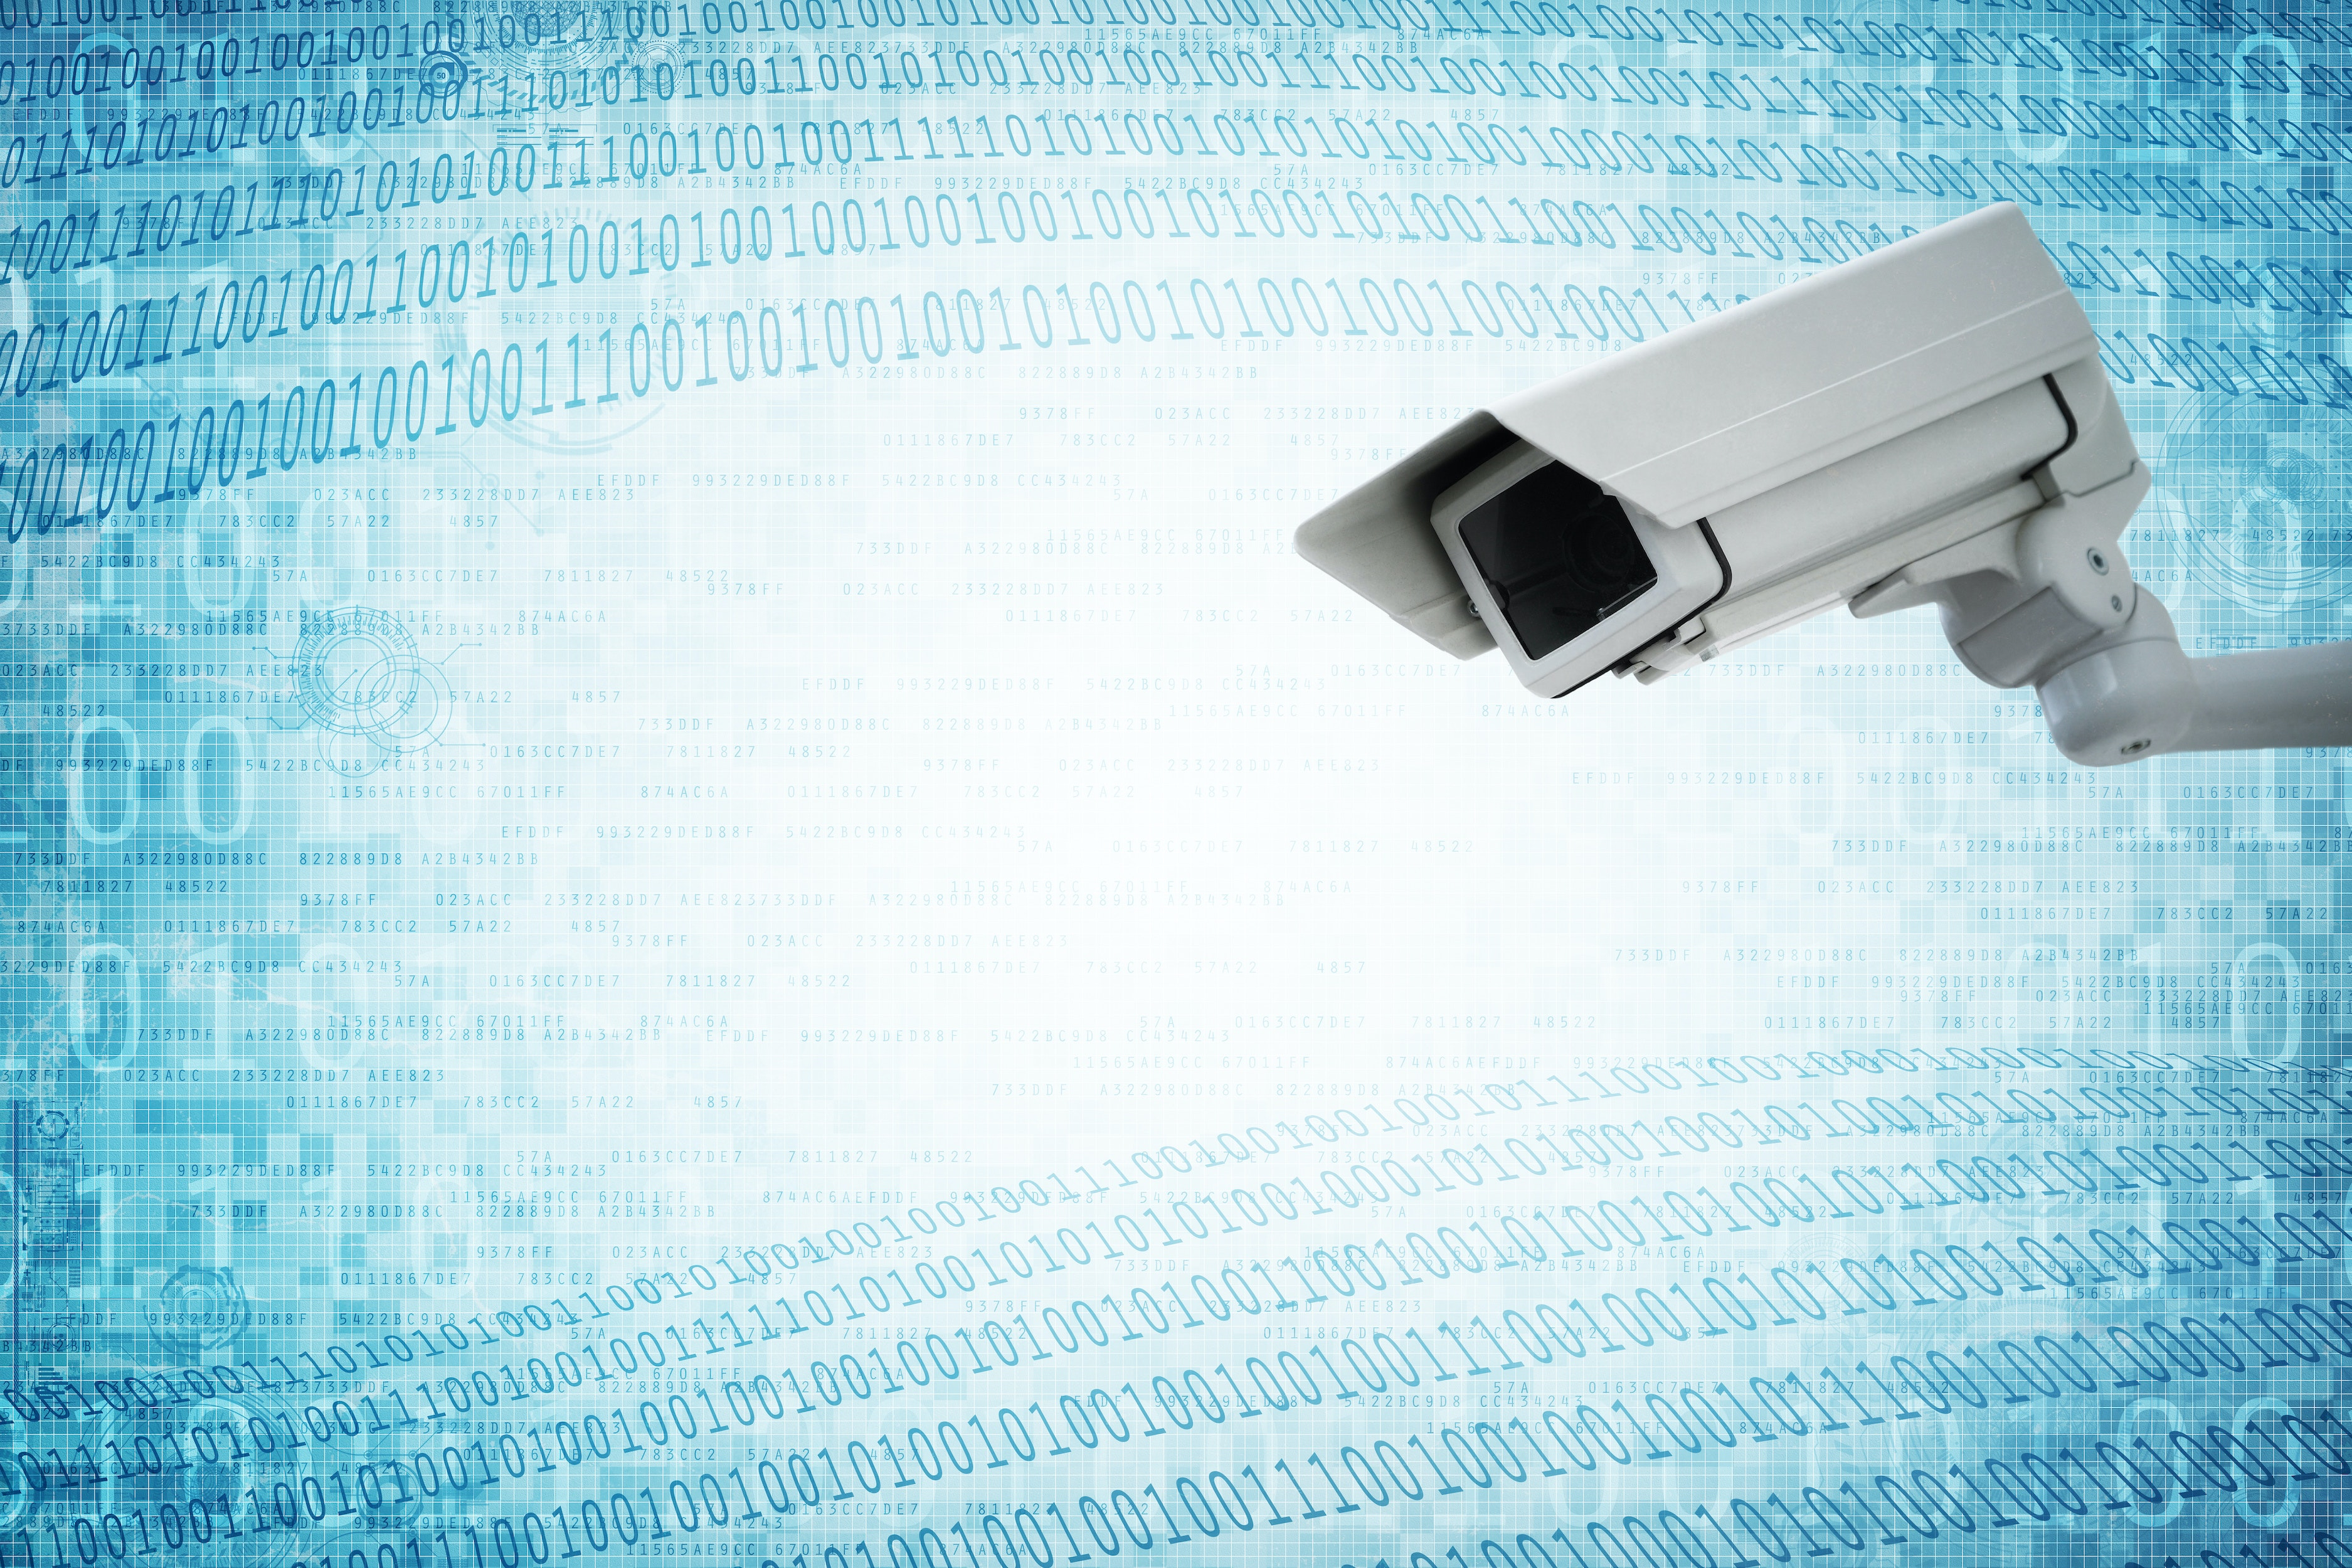 The real costs of cheap surveillance